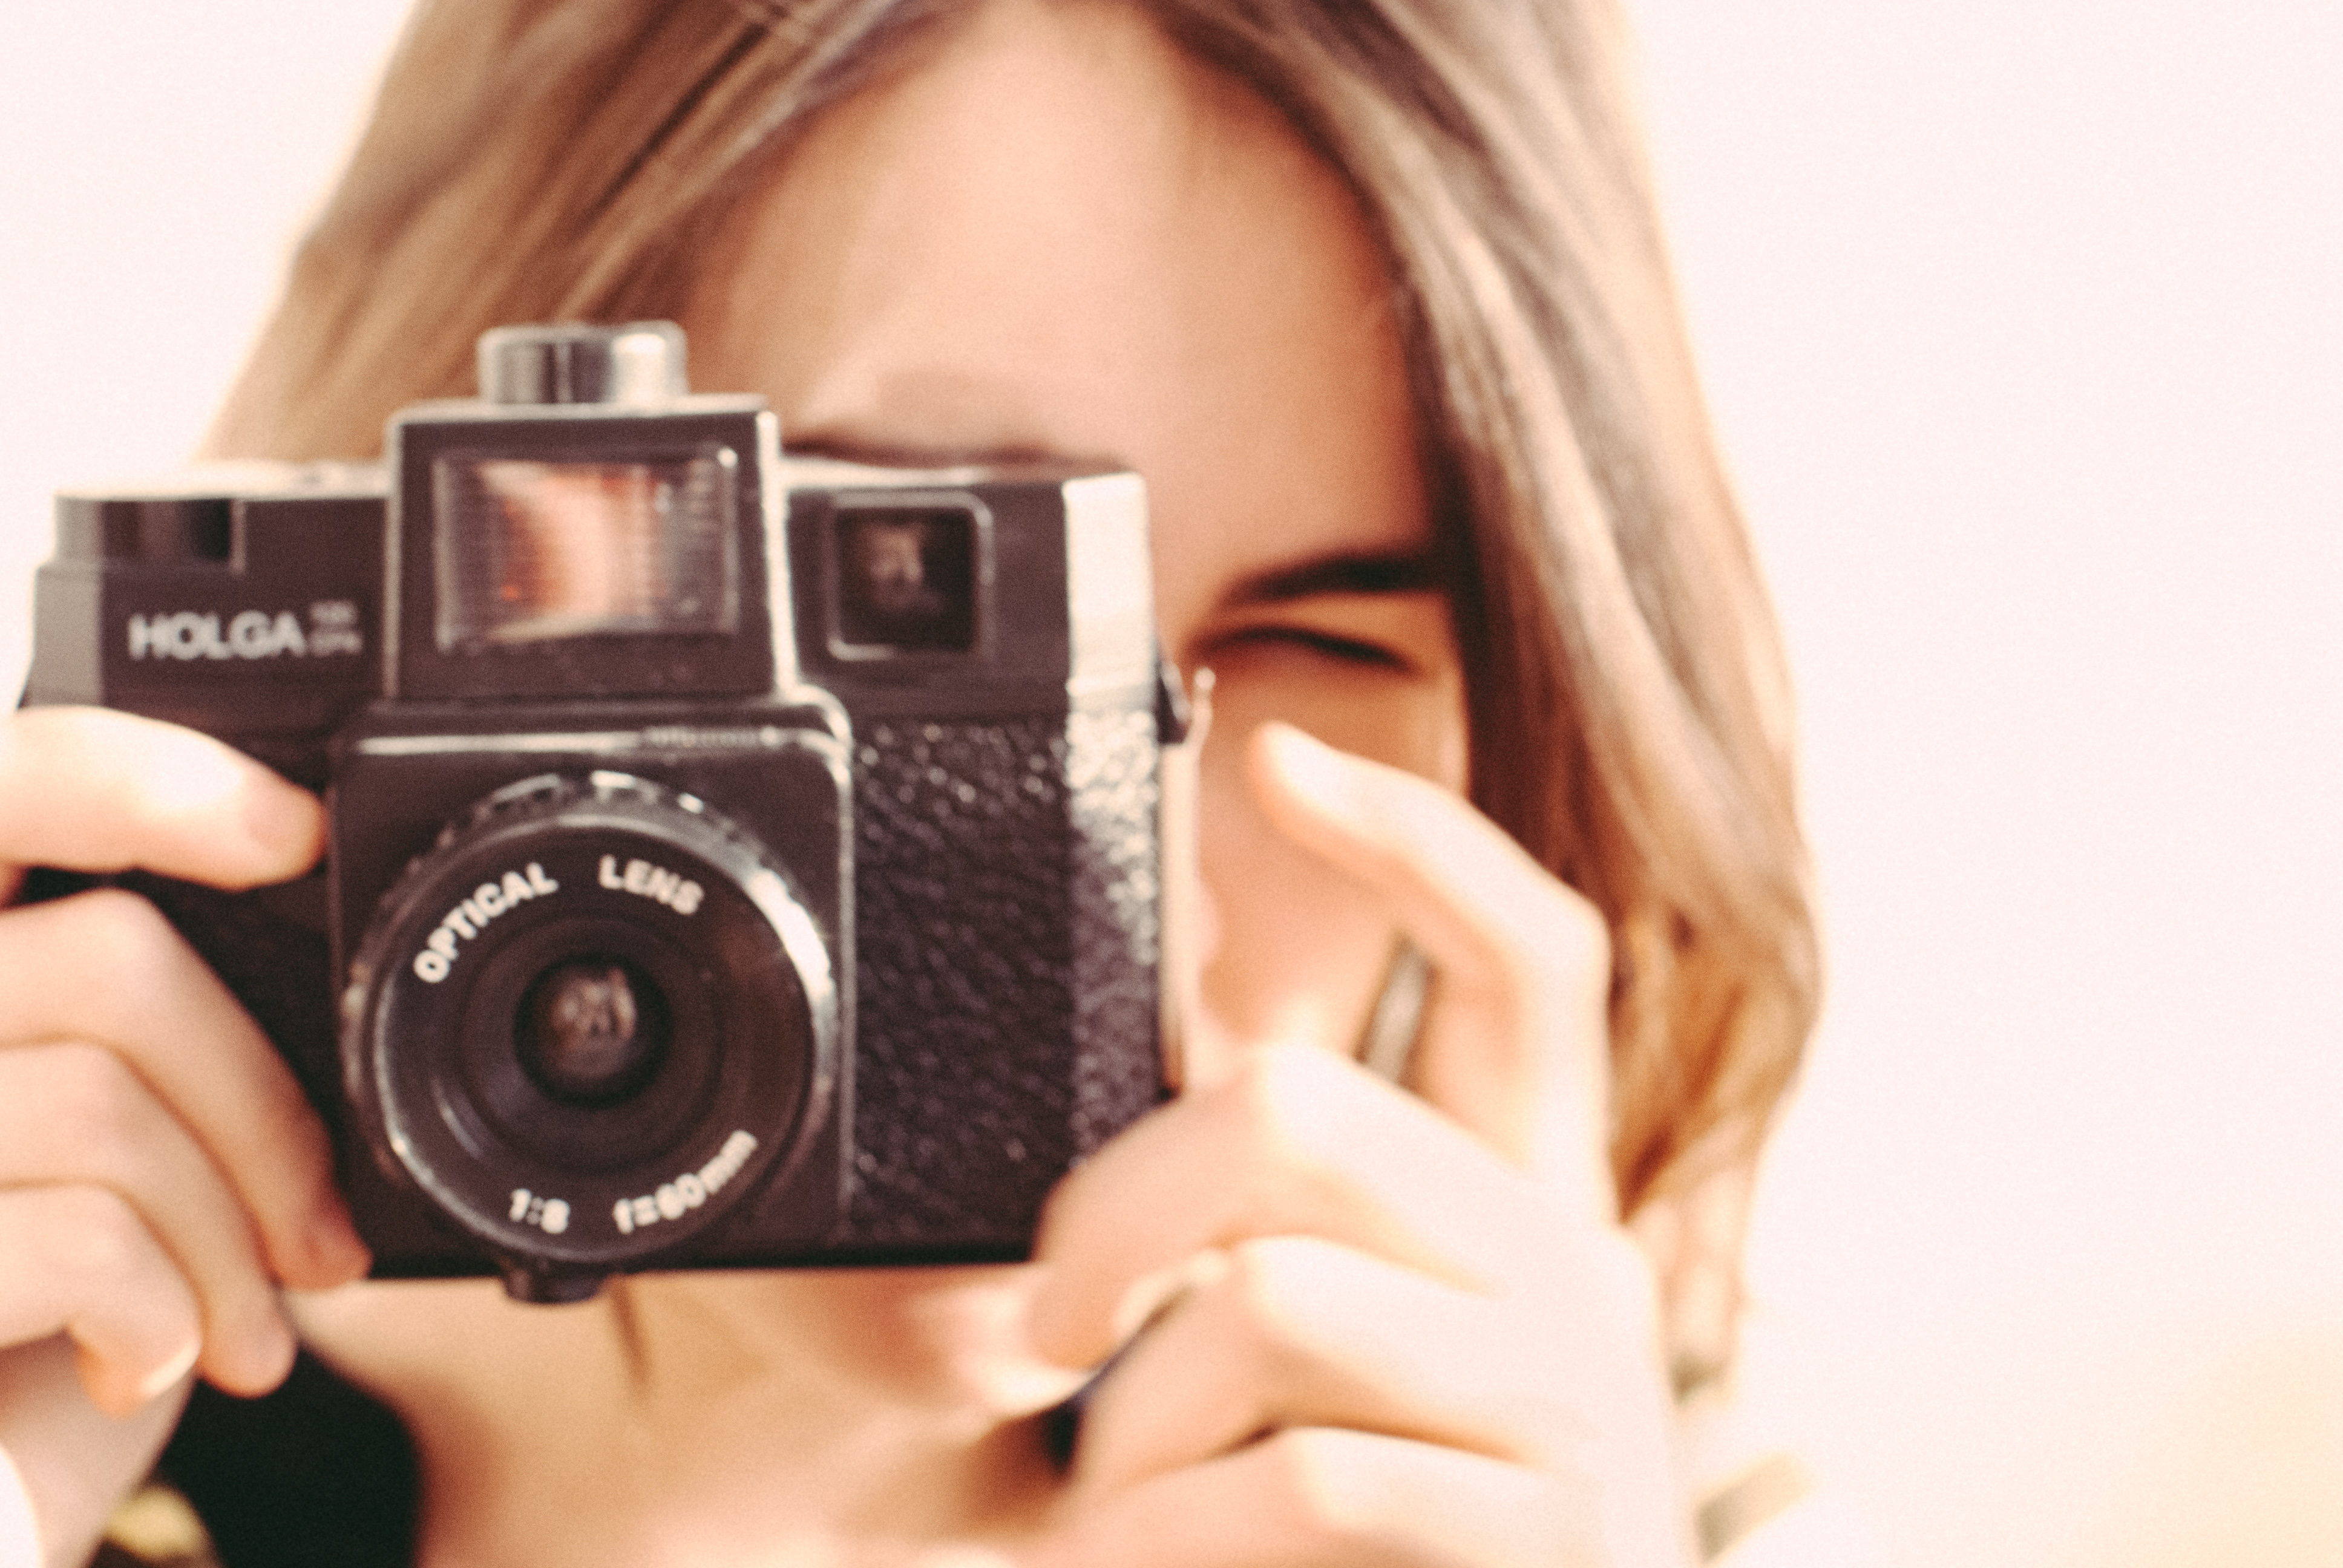 brown-haired person squinting into Holga brand camera (old fashioned kind)